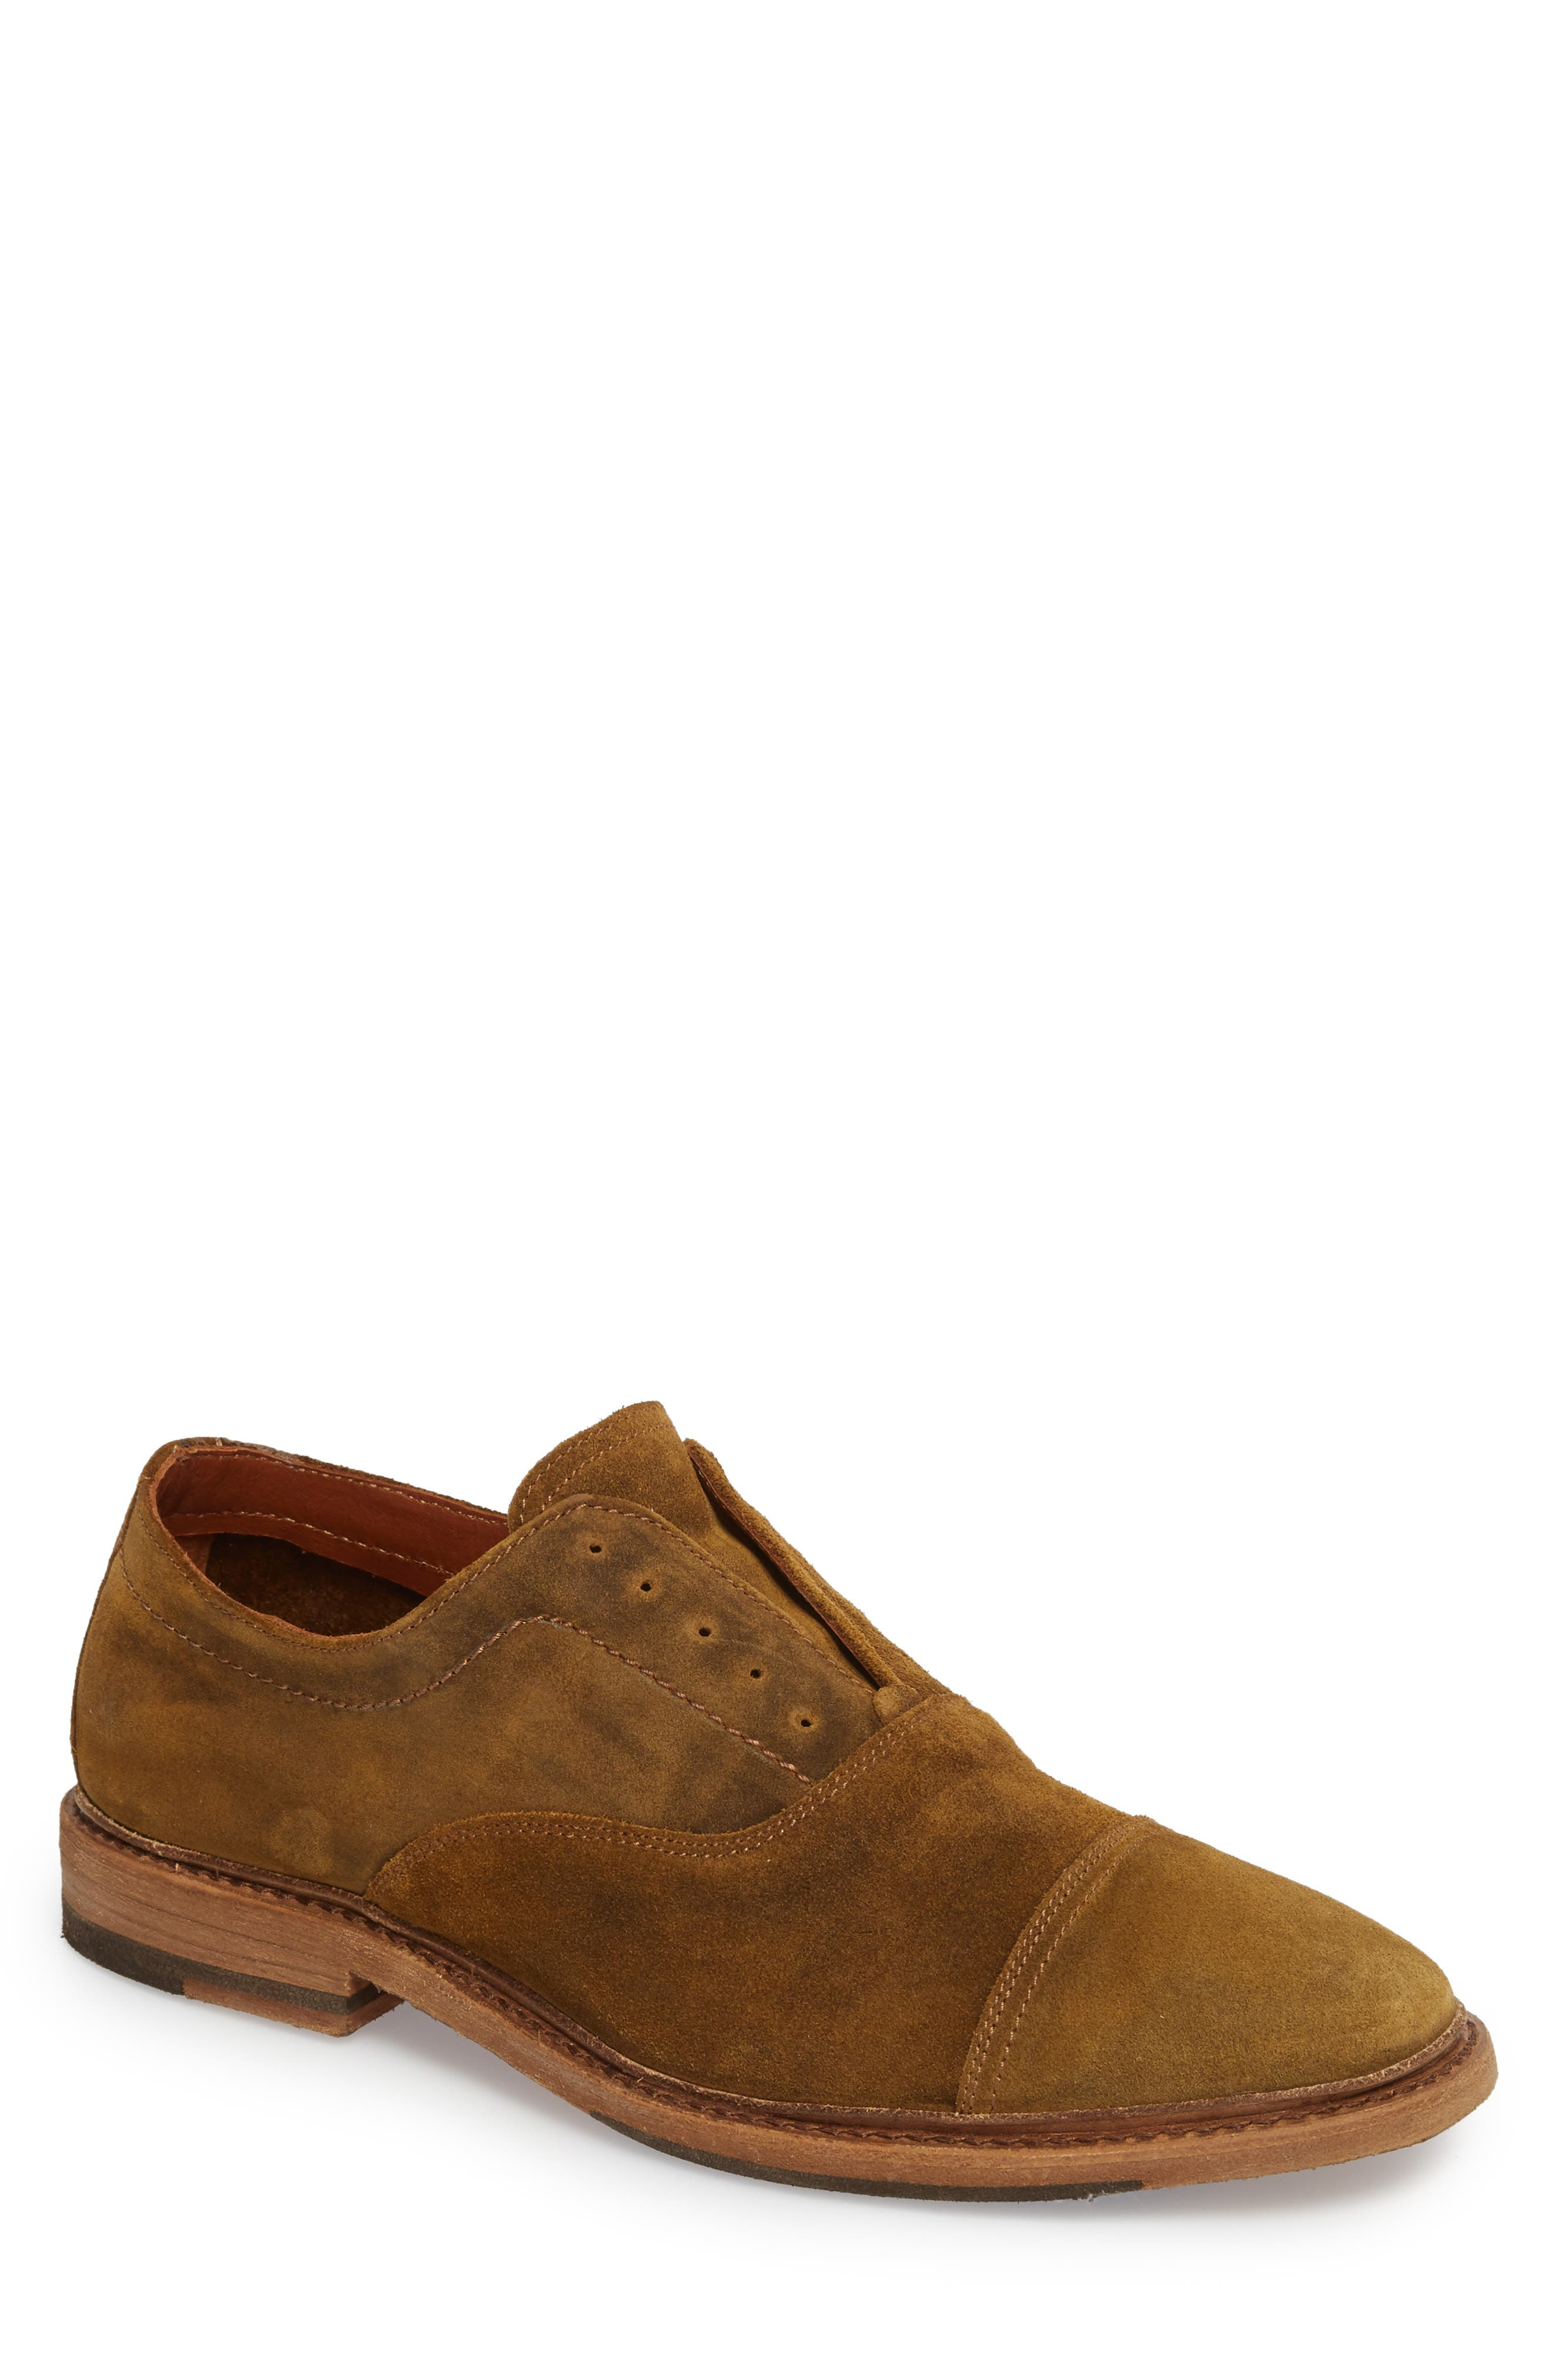 Paul Bal Cap Toe Oxford,                         Main,                         color,